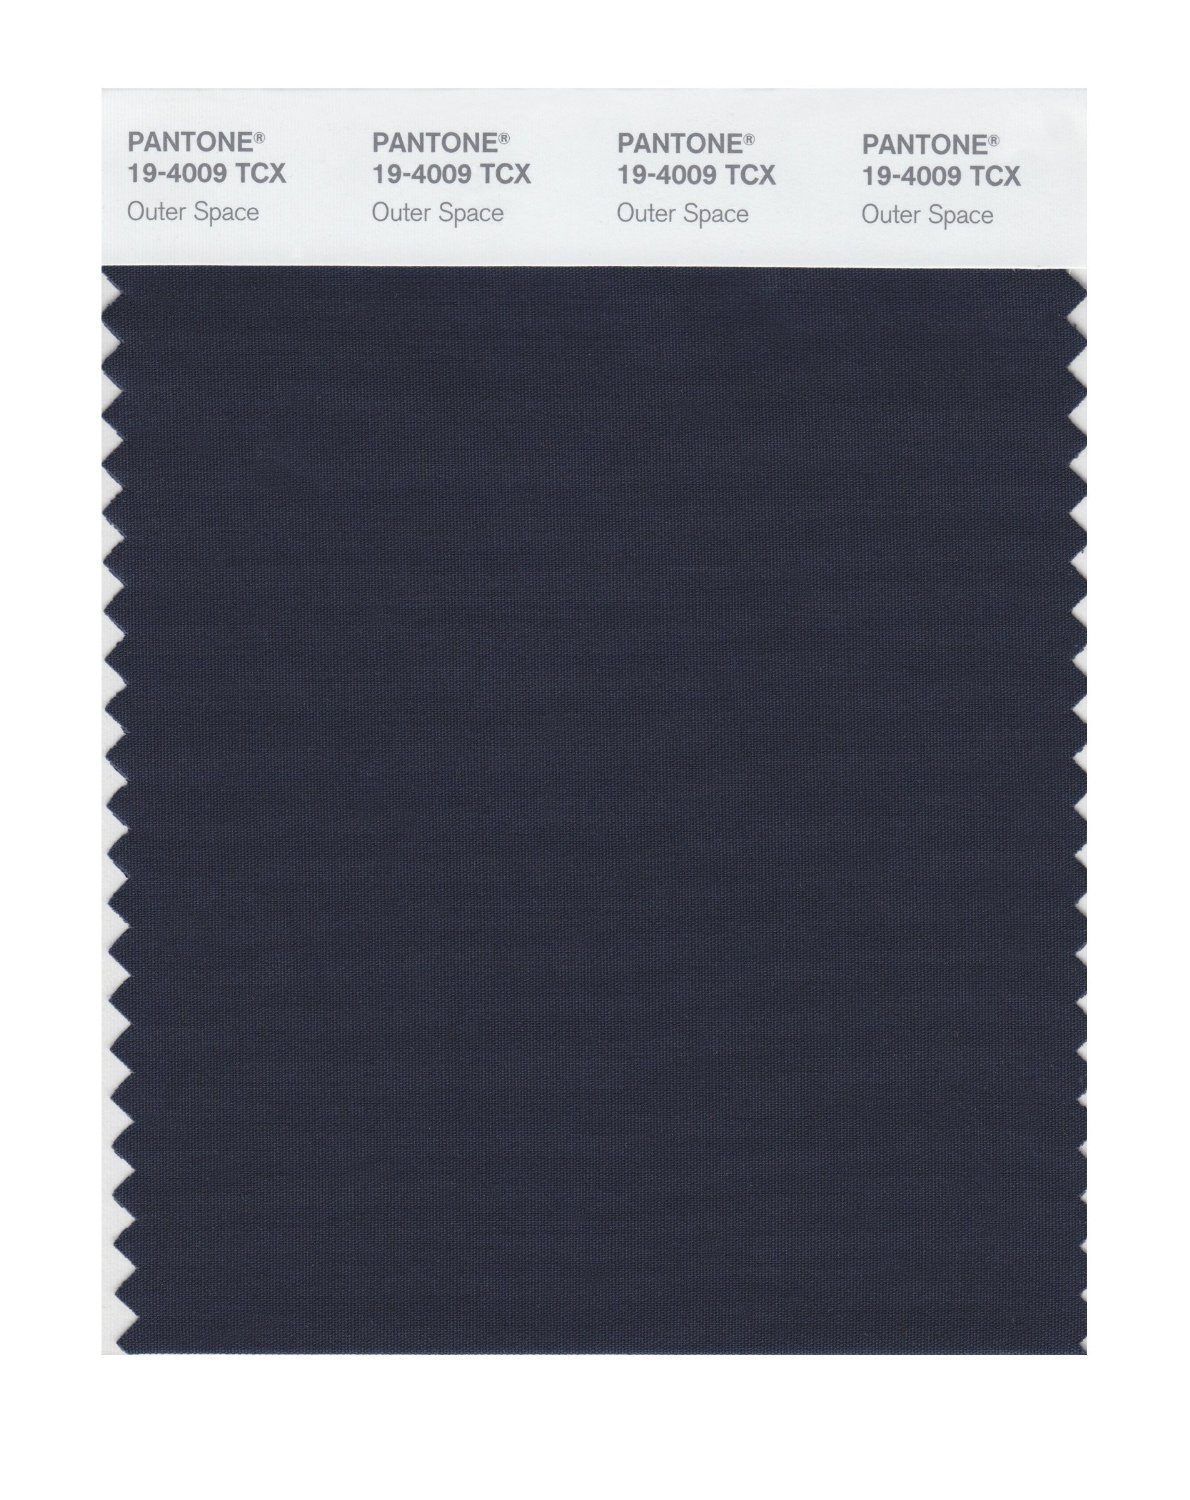 Pantone Smart Swatch 19-4009 Outer Space